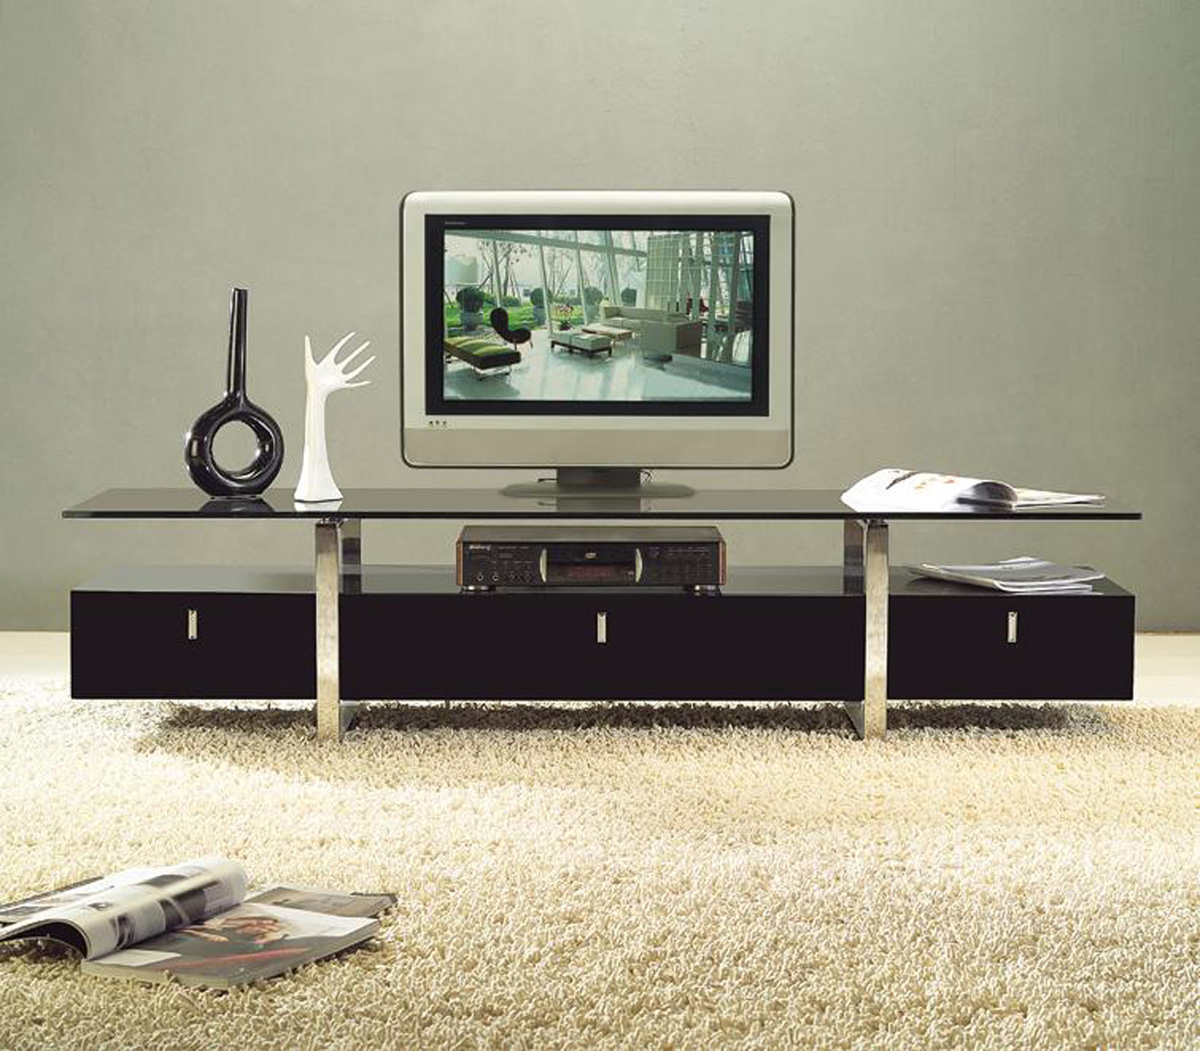 Tv Stand Modern Designs : Clear lined design contemporary brown color tv stand with